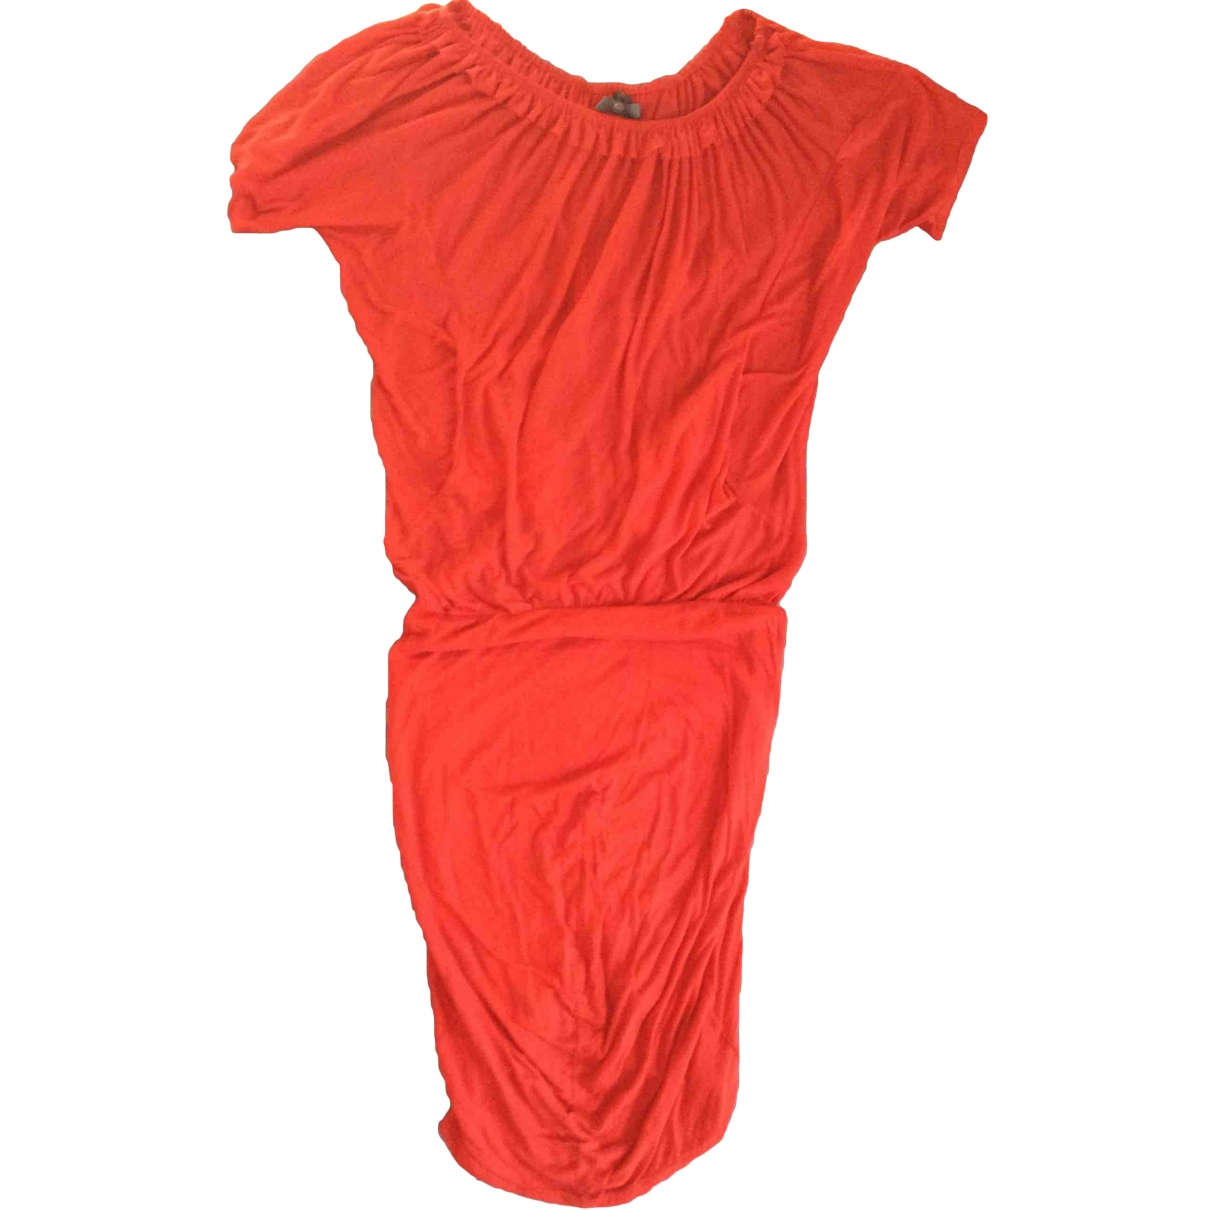 Mcq \N Red Cotton dress for Women M International